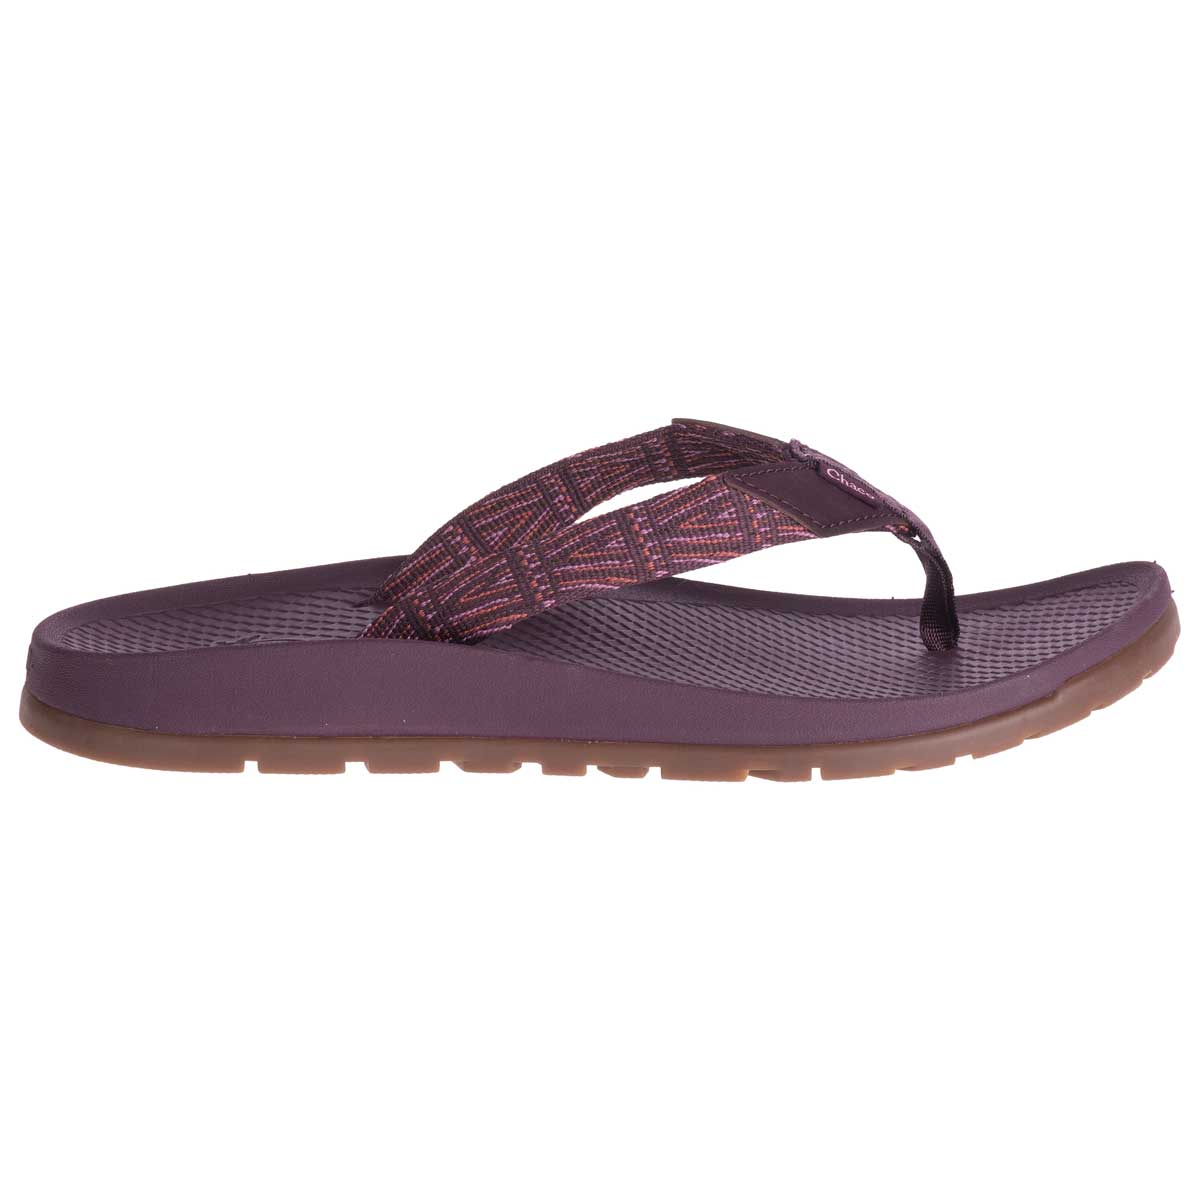 Chaco Lowdown Women's Flip Flop in Wayway Fig